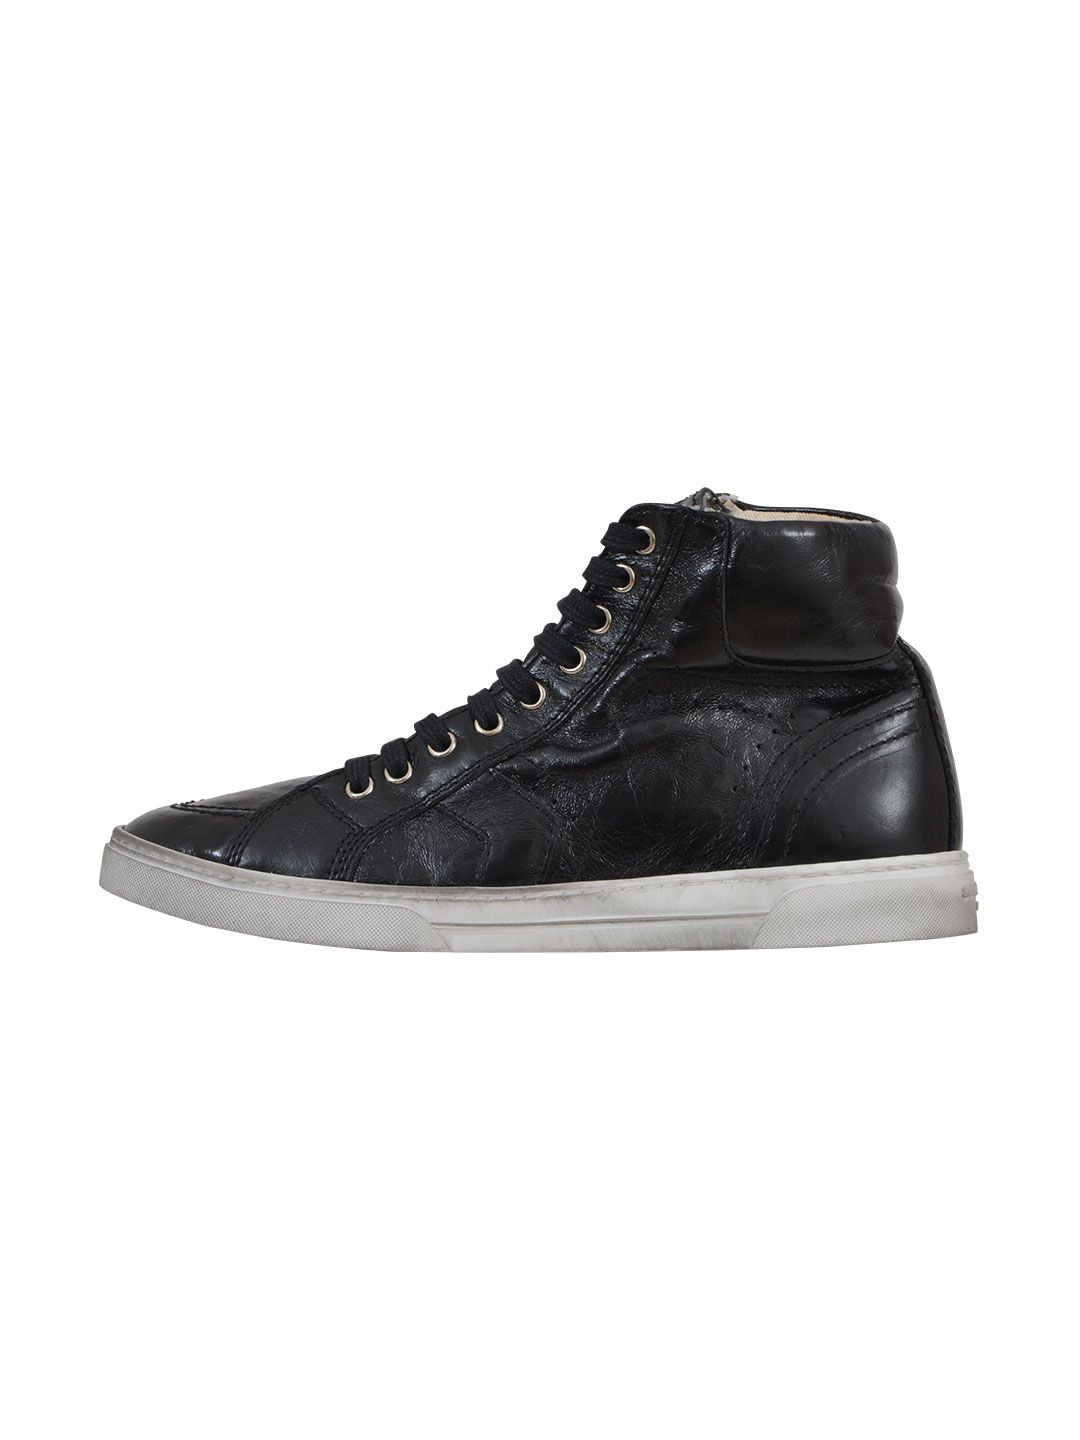 Saint Laurent Mid Top 1971 Sneaker